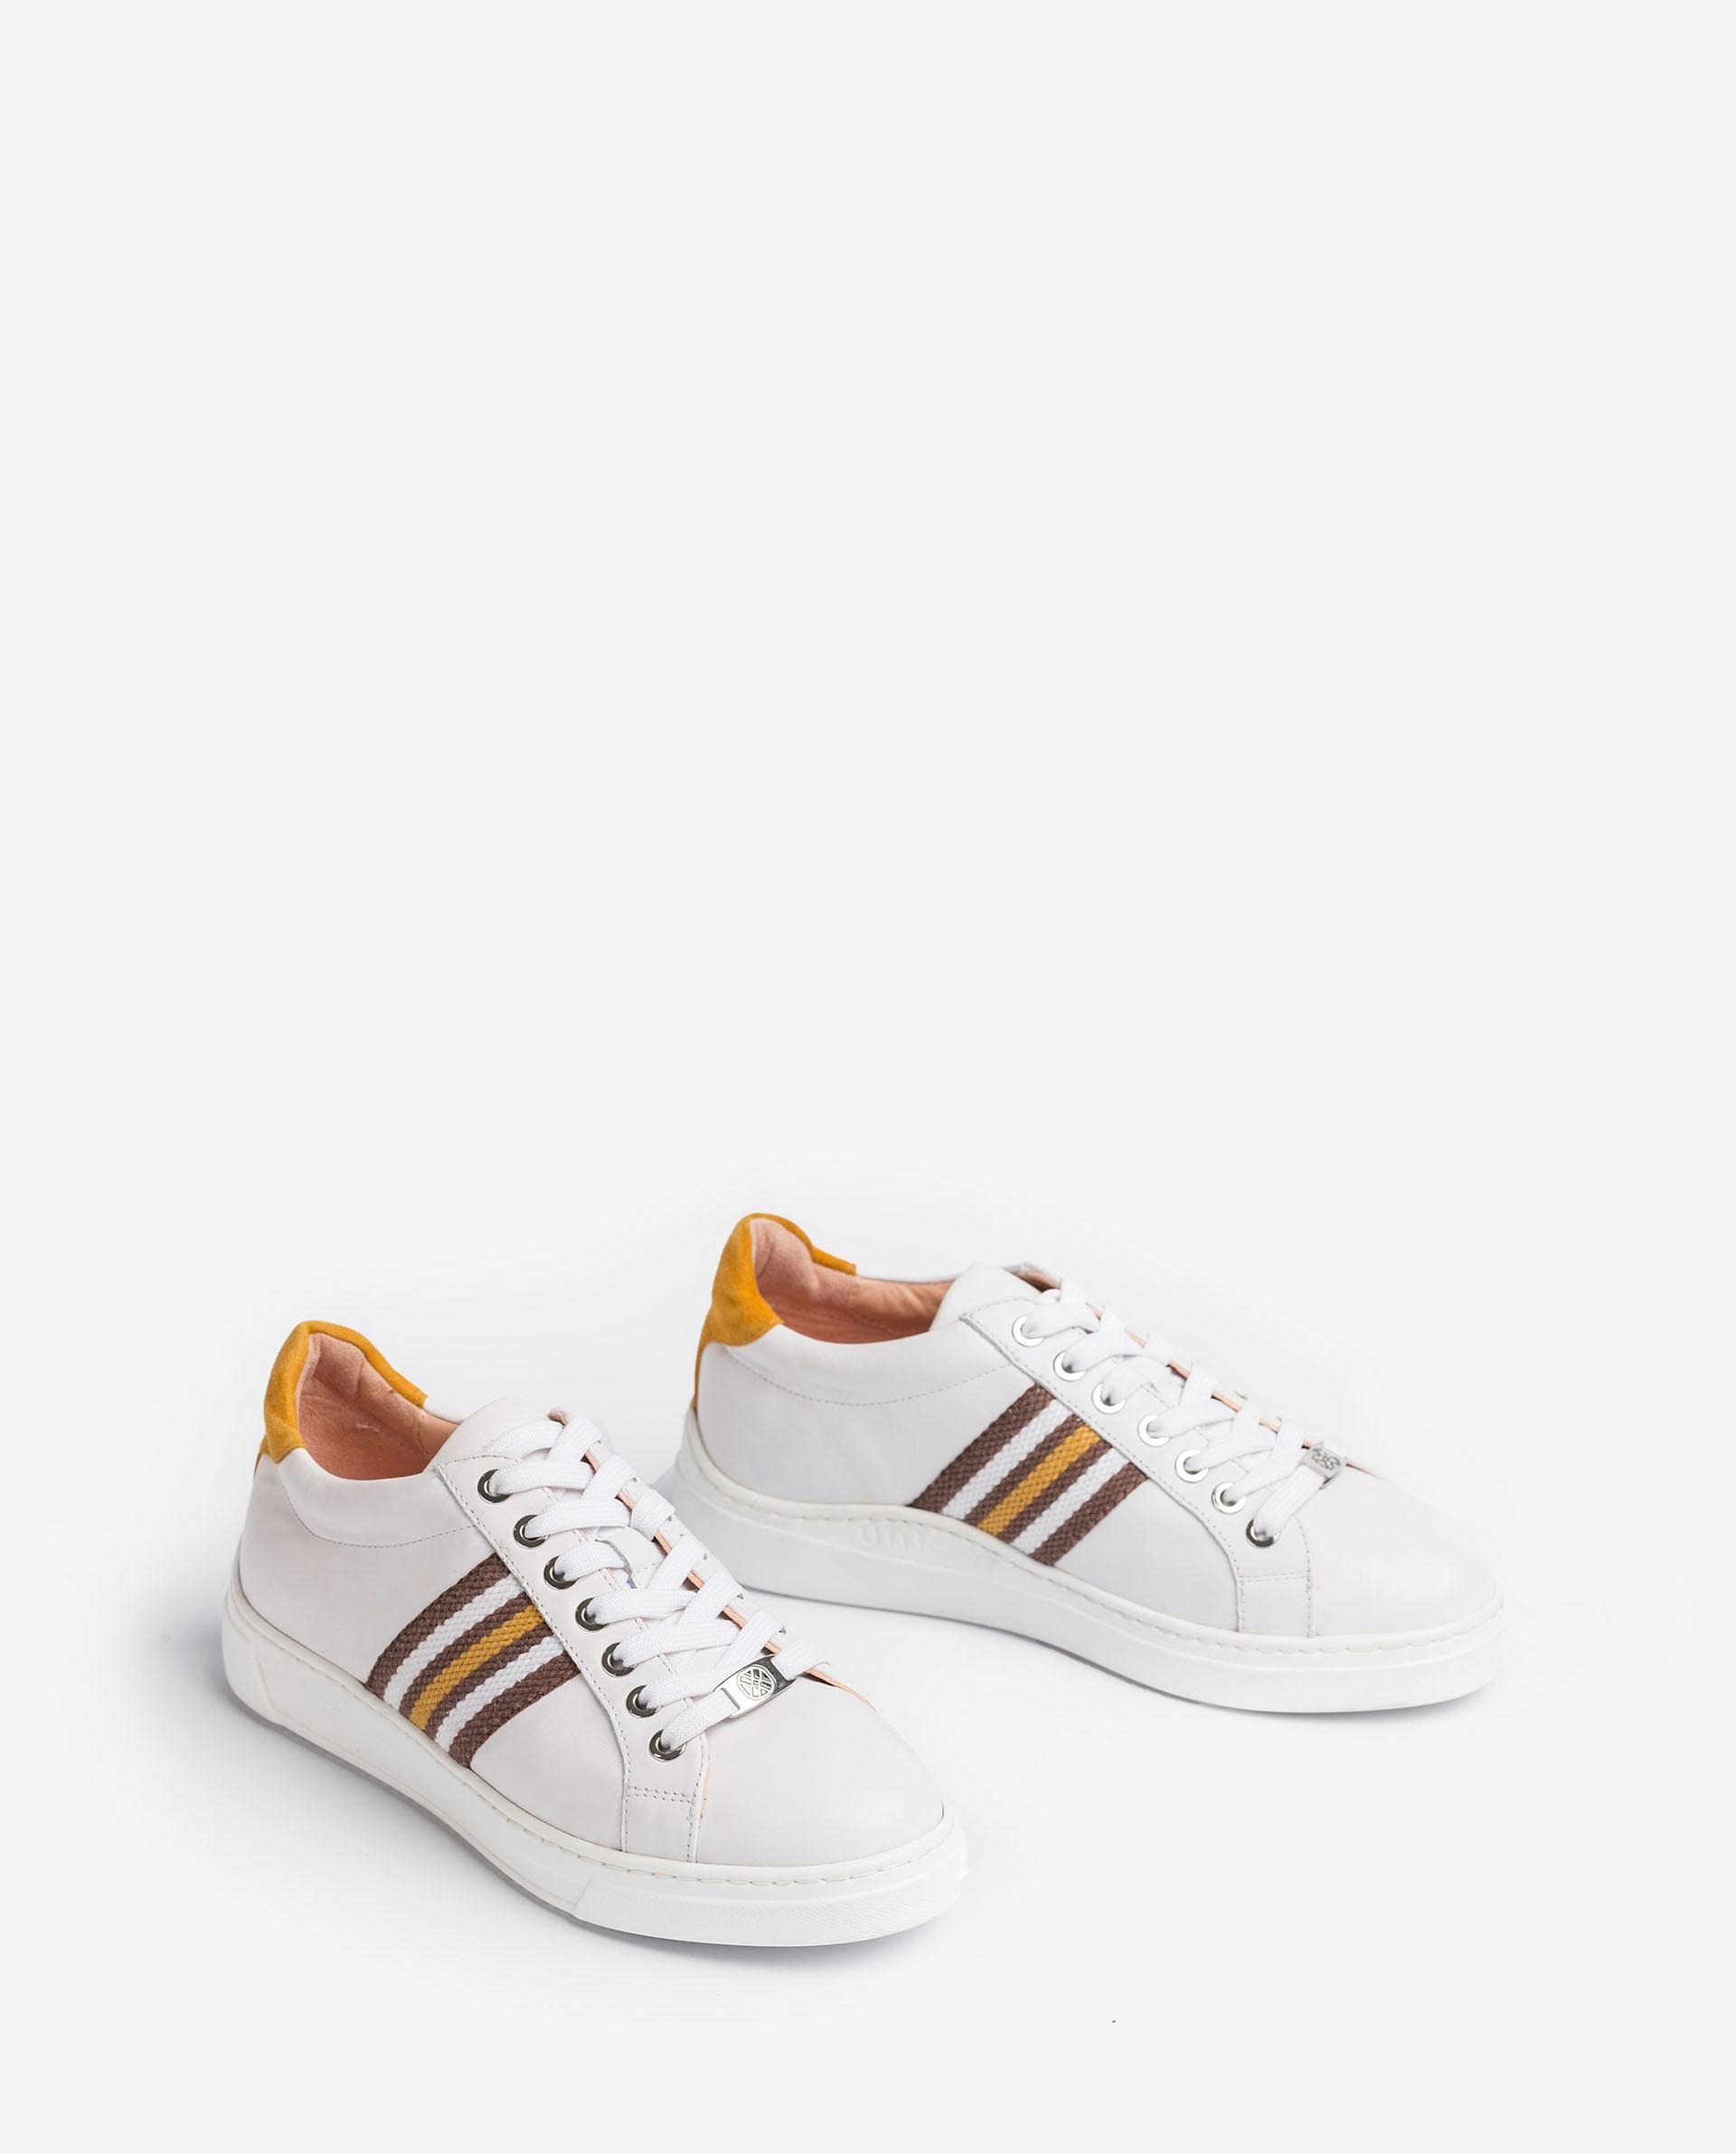 UNISA Leather sneakers embellished with multi-coloured band FAROLA_21_NF 2